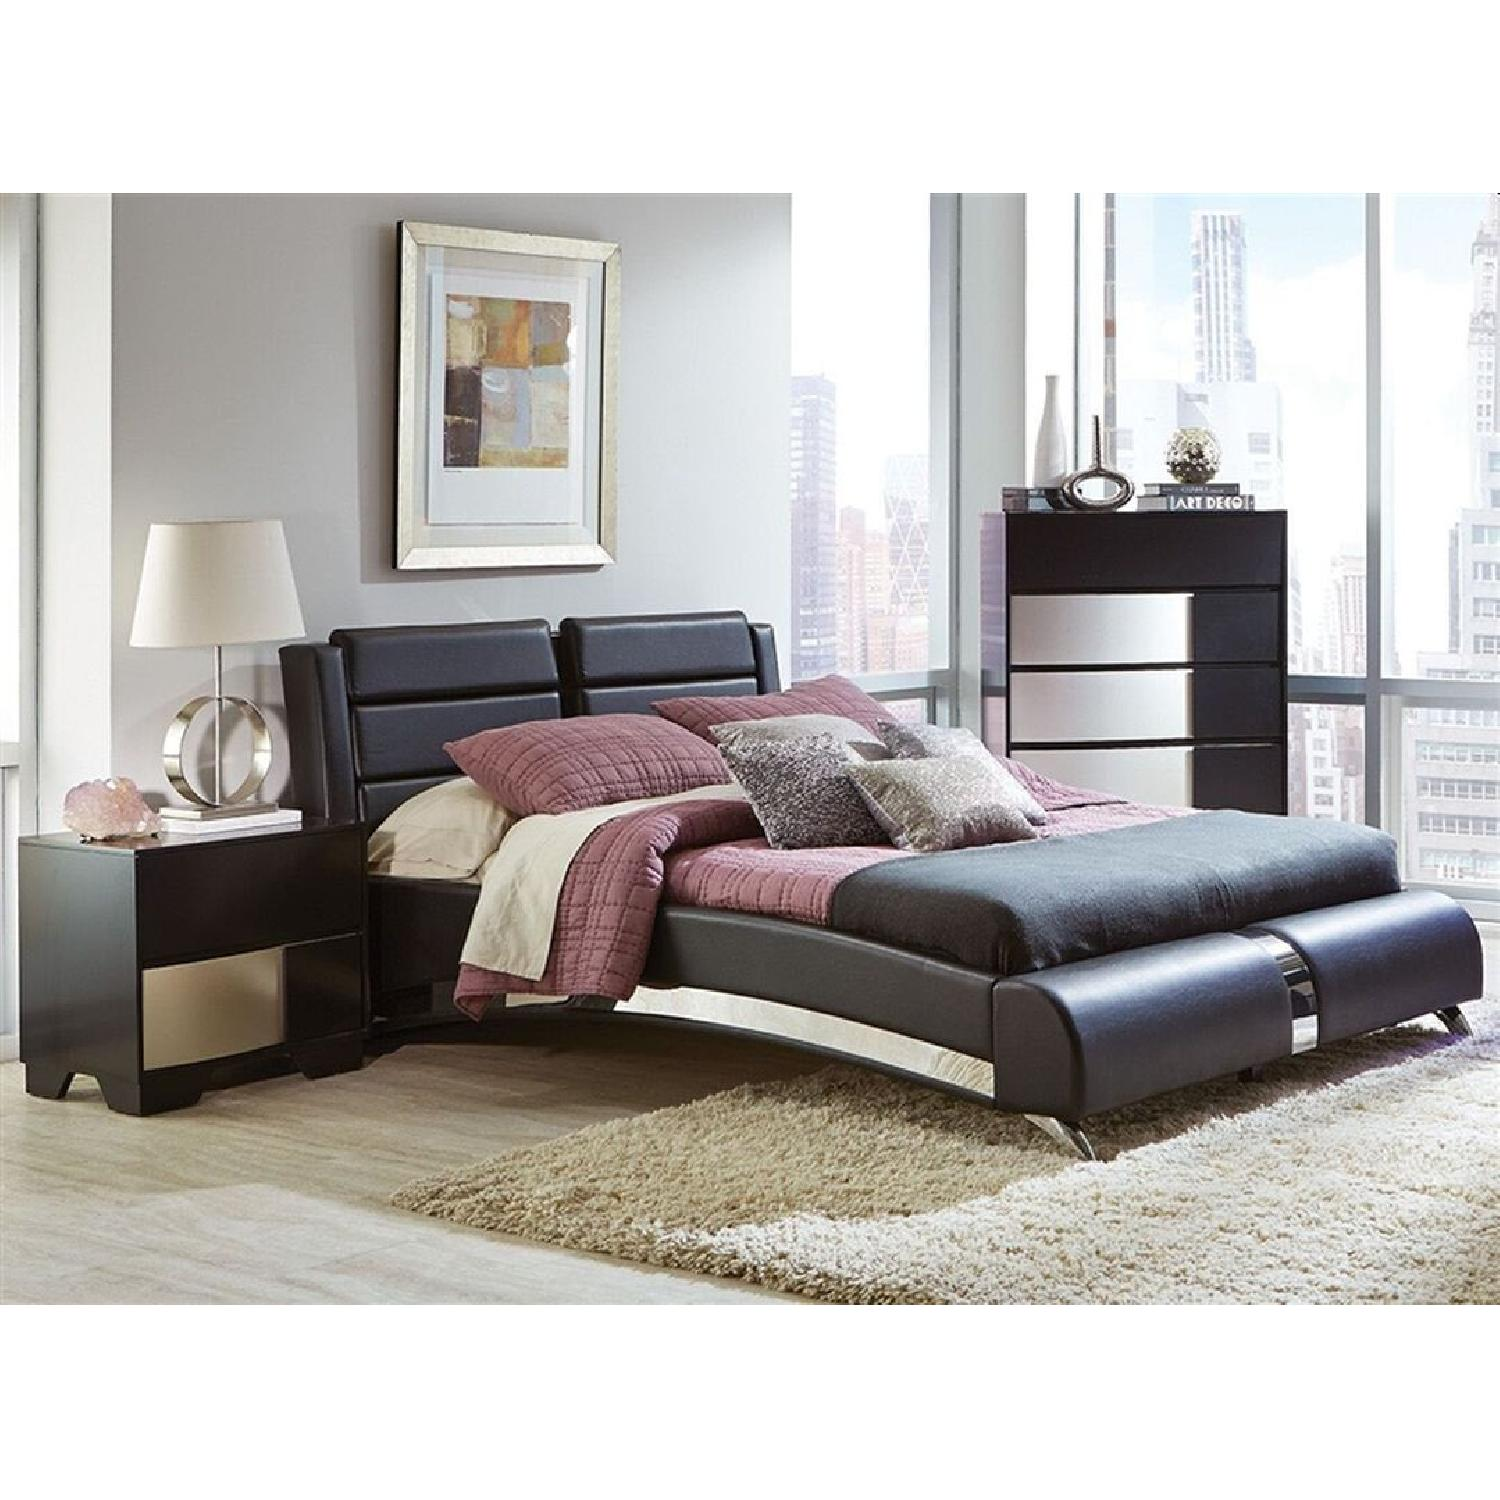 King Platform Bed In Black Leatherette w/ Chrome Accent - image-2